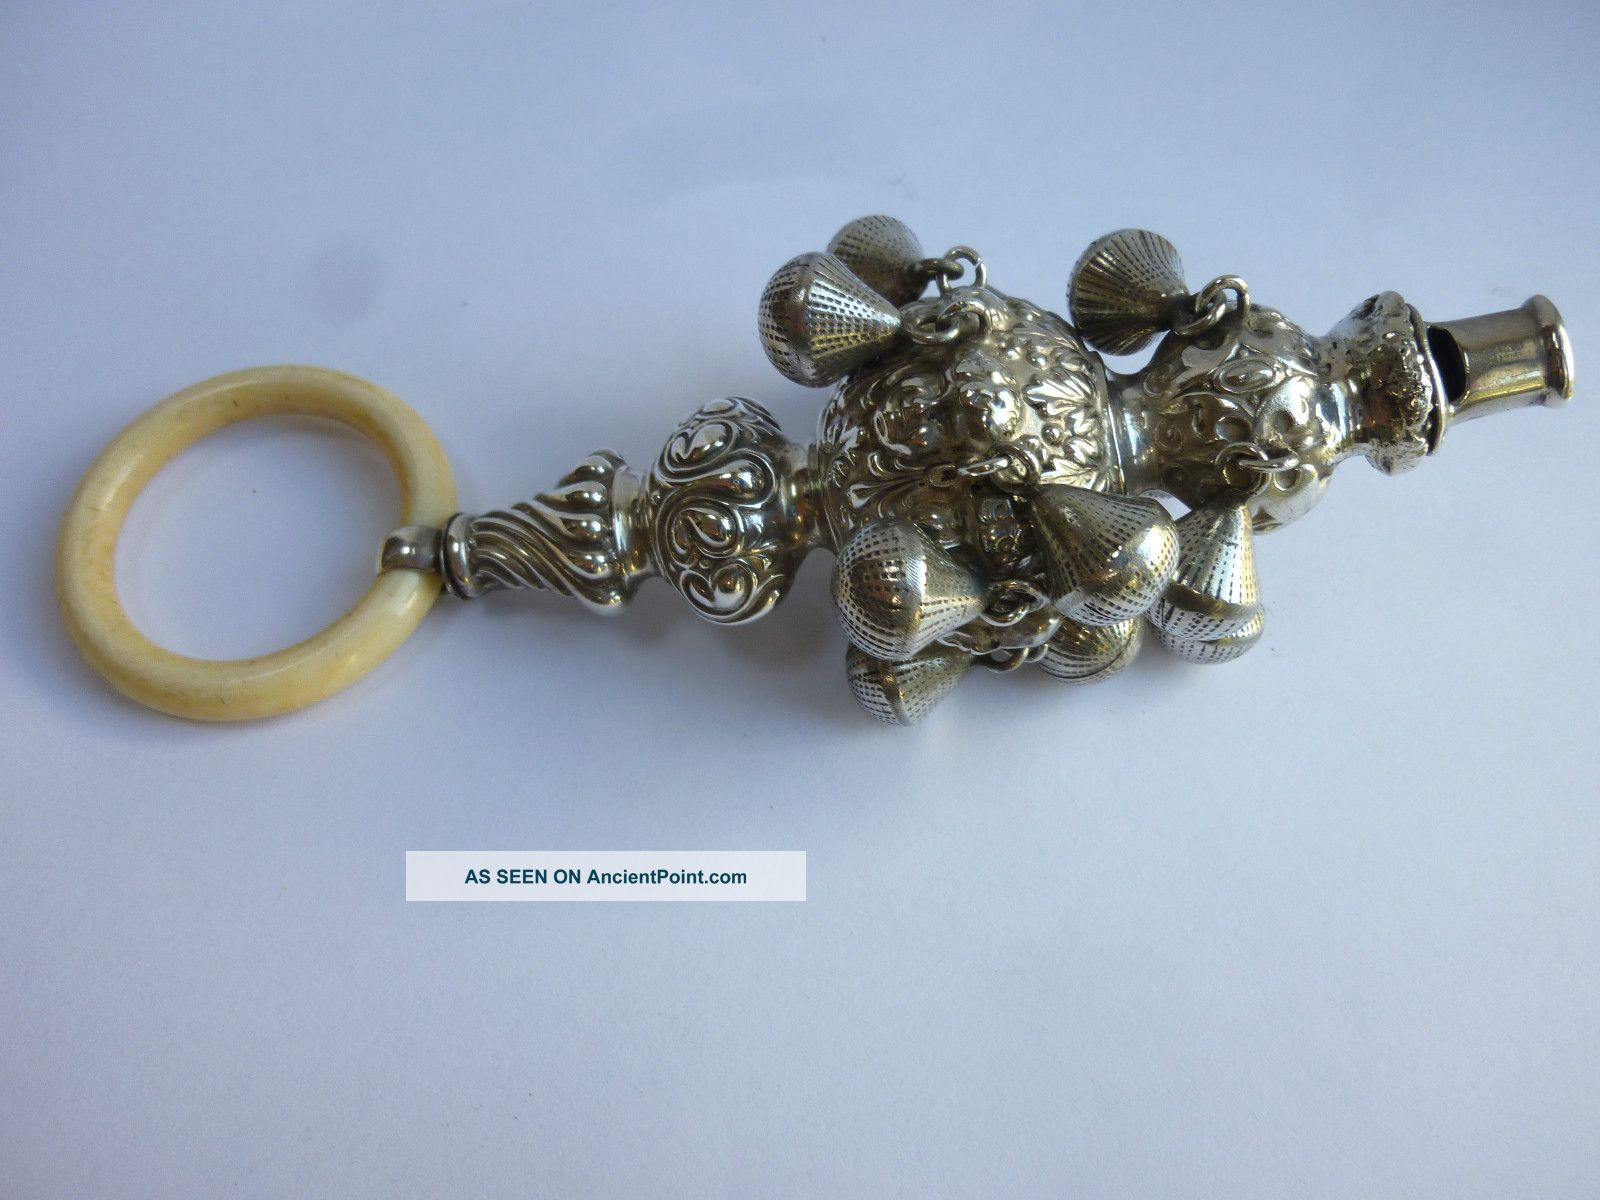 Rare Edwardian Large Solid Silver Babys Rattle / Teething Ring - C Norris 1905 Other photo